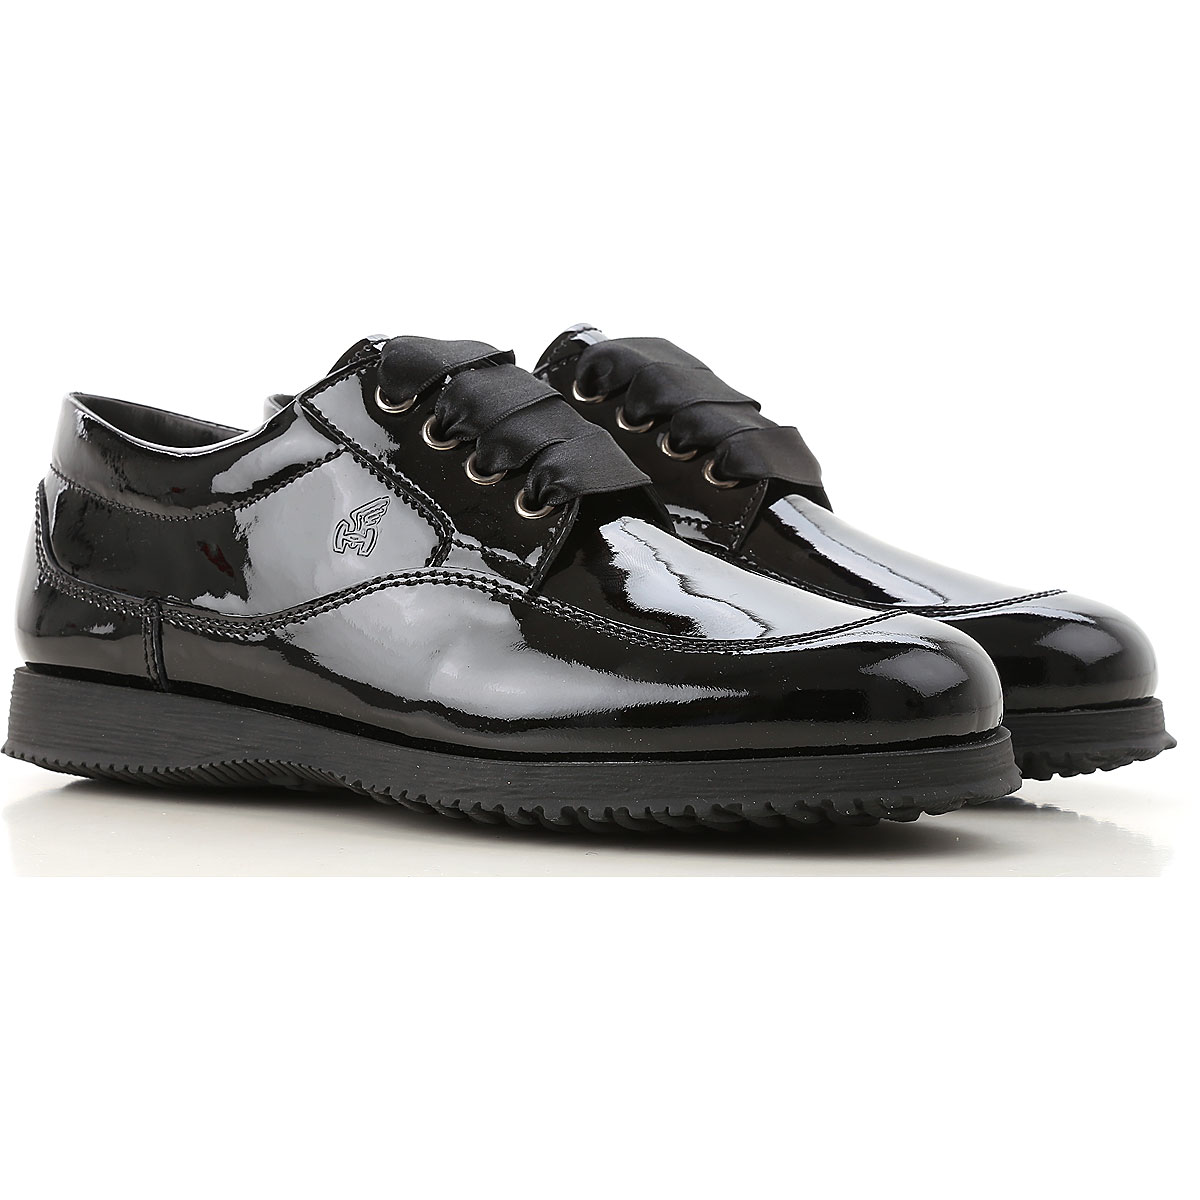 Image of Hogan Lace Up Shoes for Men Oxfords, Derbies and Brogues, Black, Patent Leather, 2017, 6 7 8 9